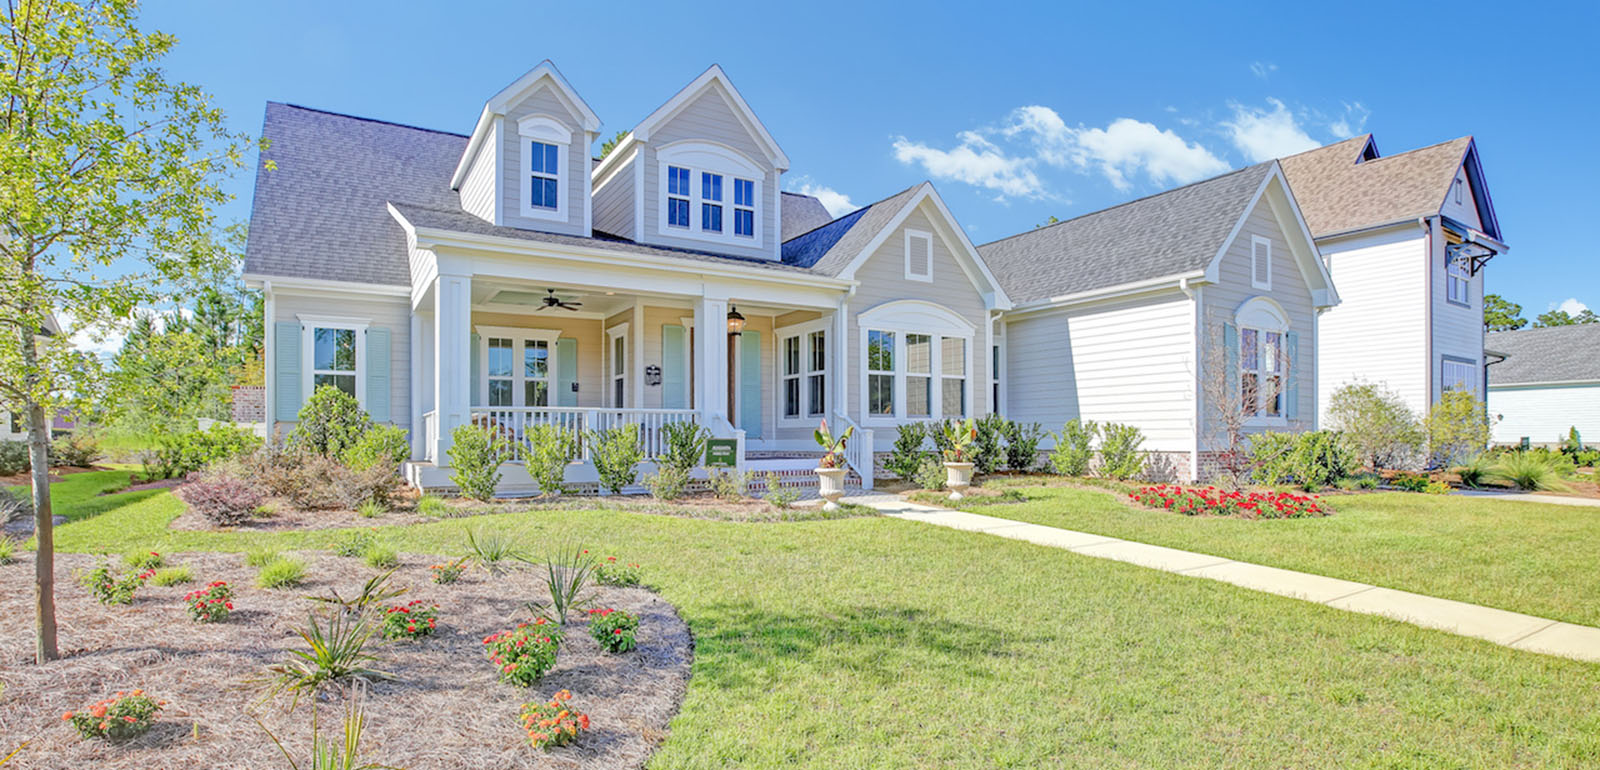 Manufactured homes for sale near me